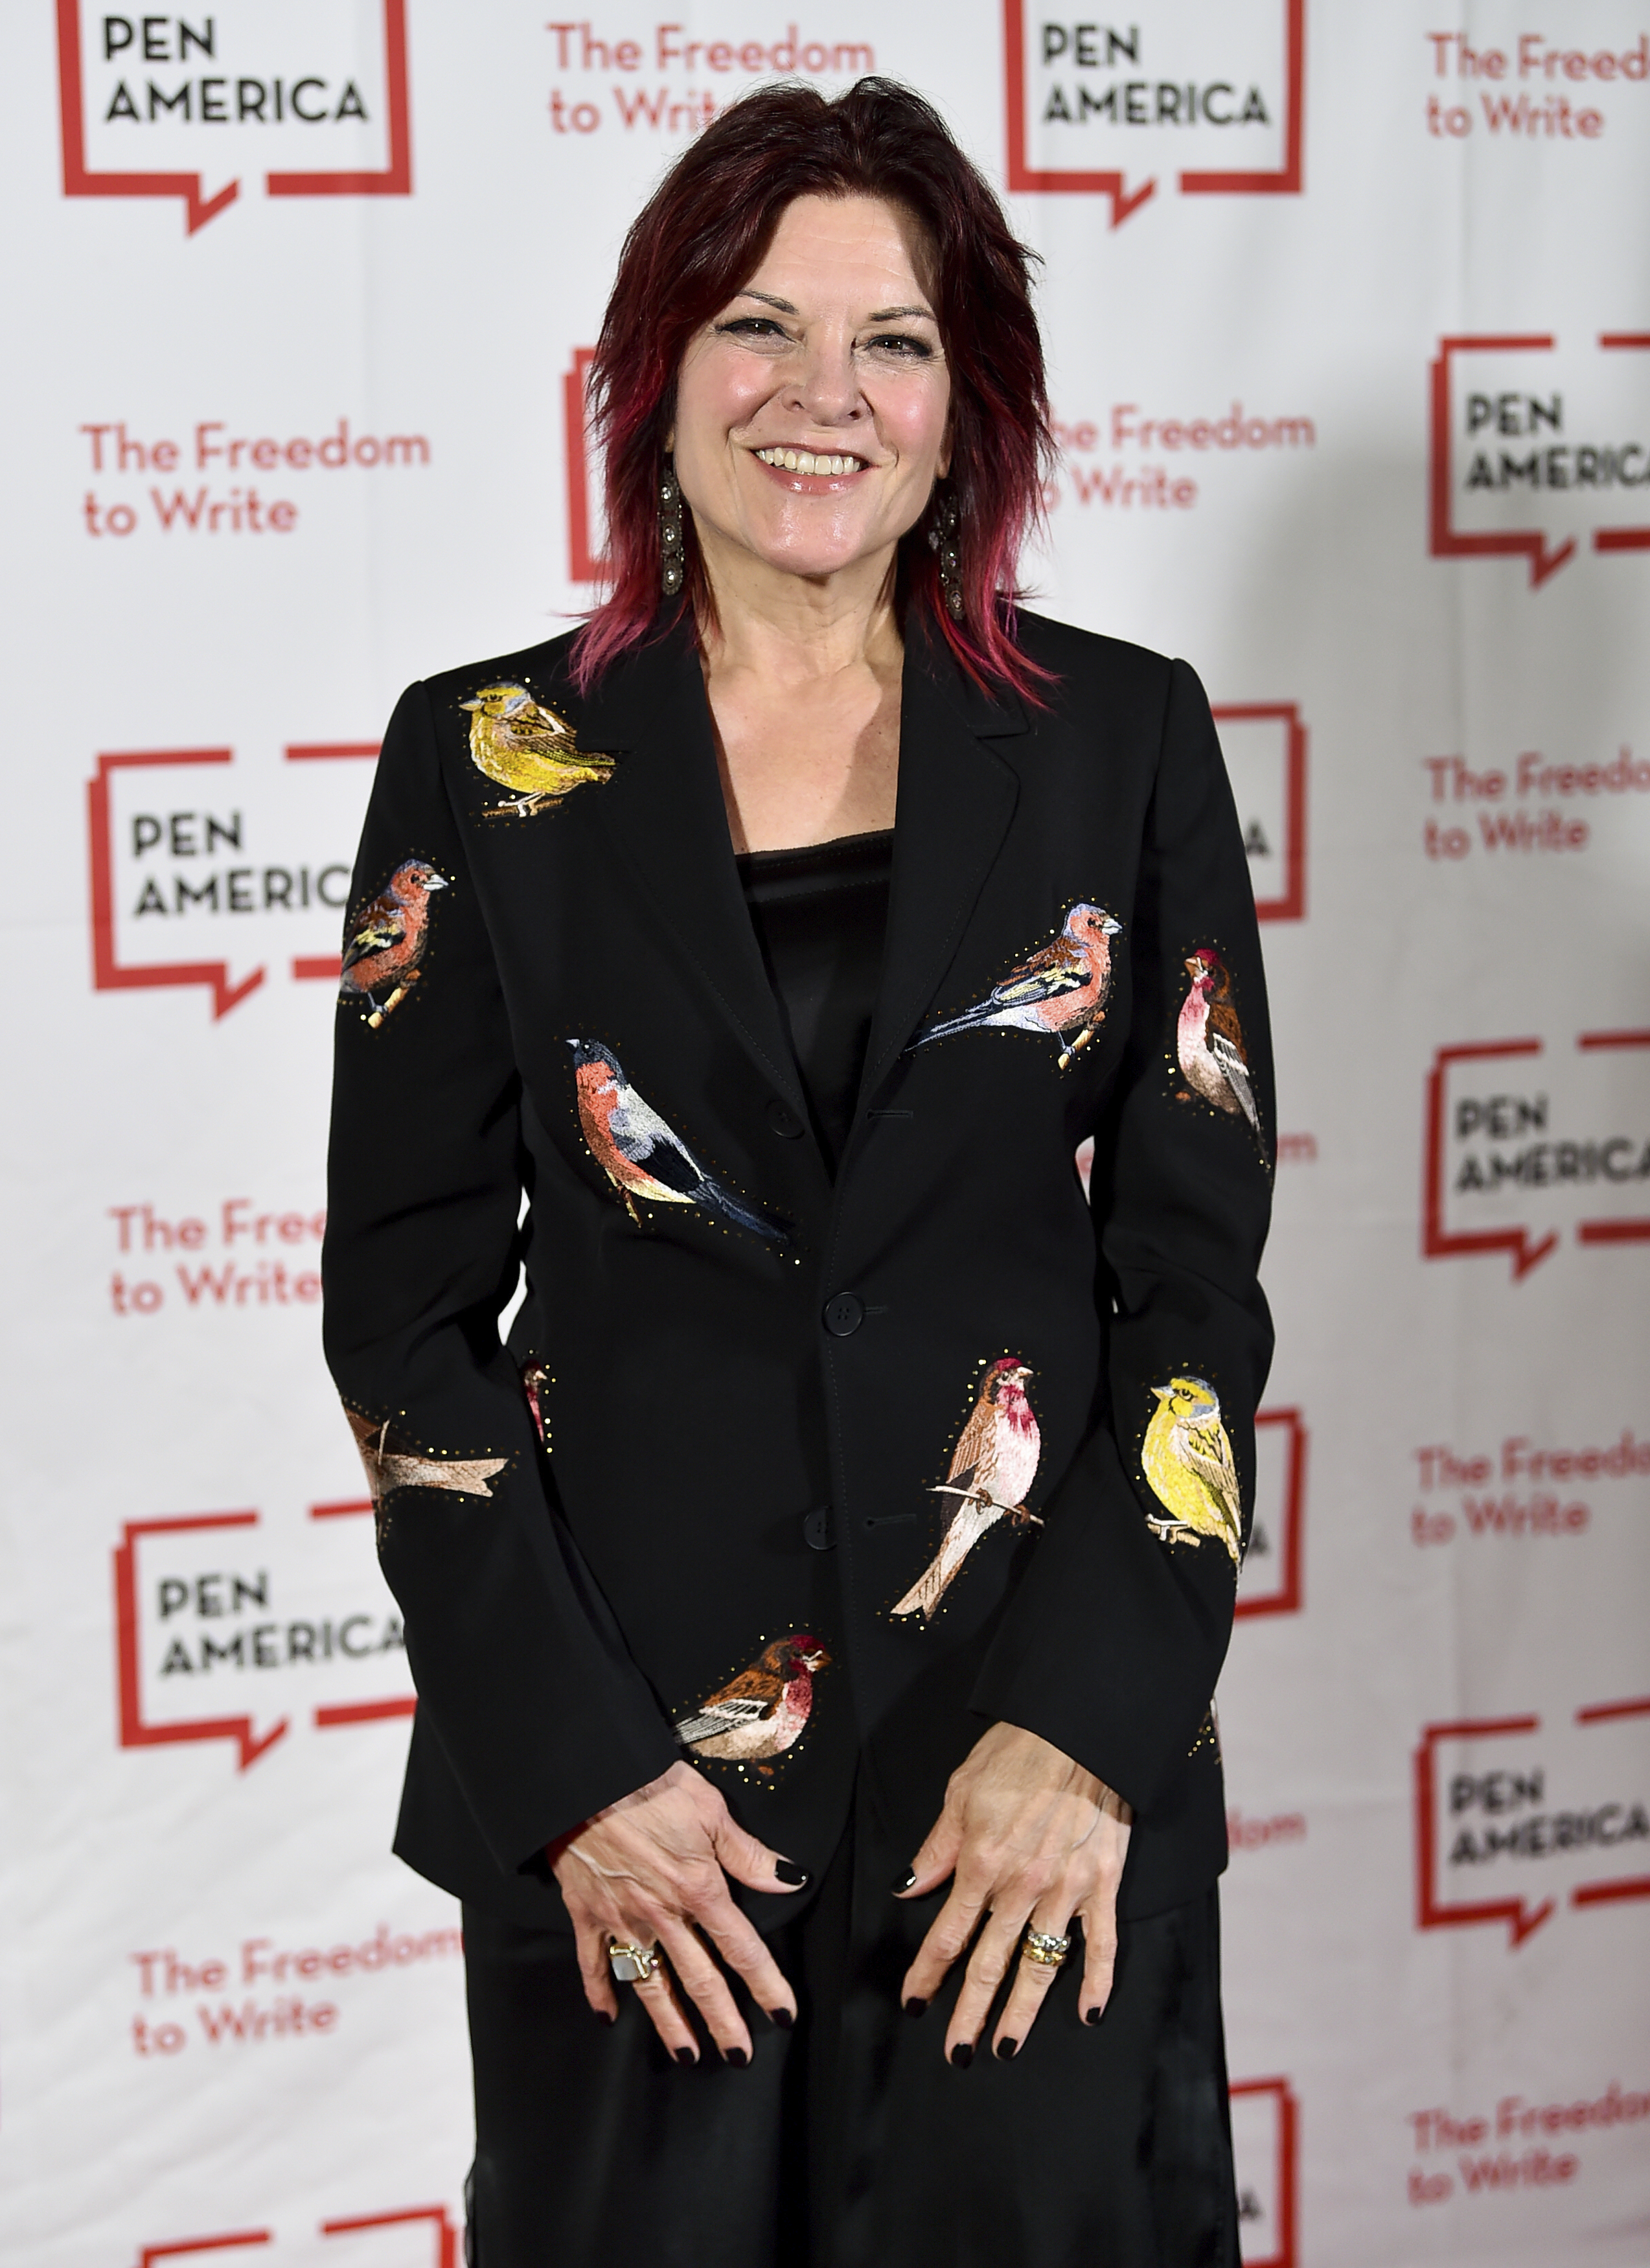 Singer-songwriter Rosanne Cash attends the 2018 PEN Literary Gala at the American Museum of Natural History on Tuesday, May 22, 2018, in New York. (Photo by Evan Agostini/Invision/AP)